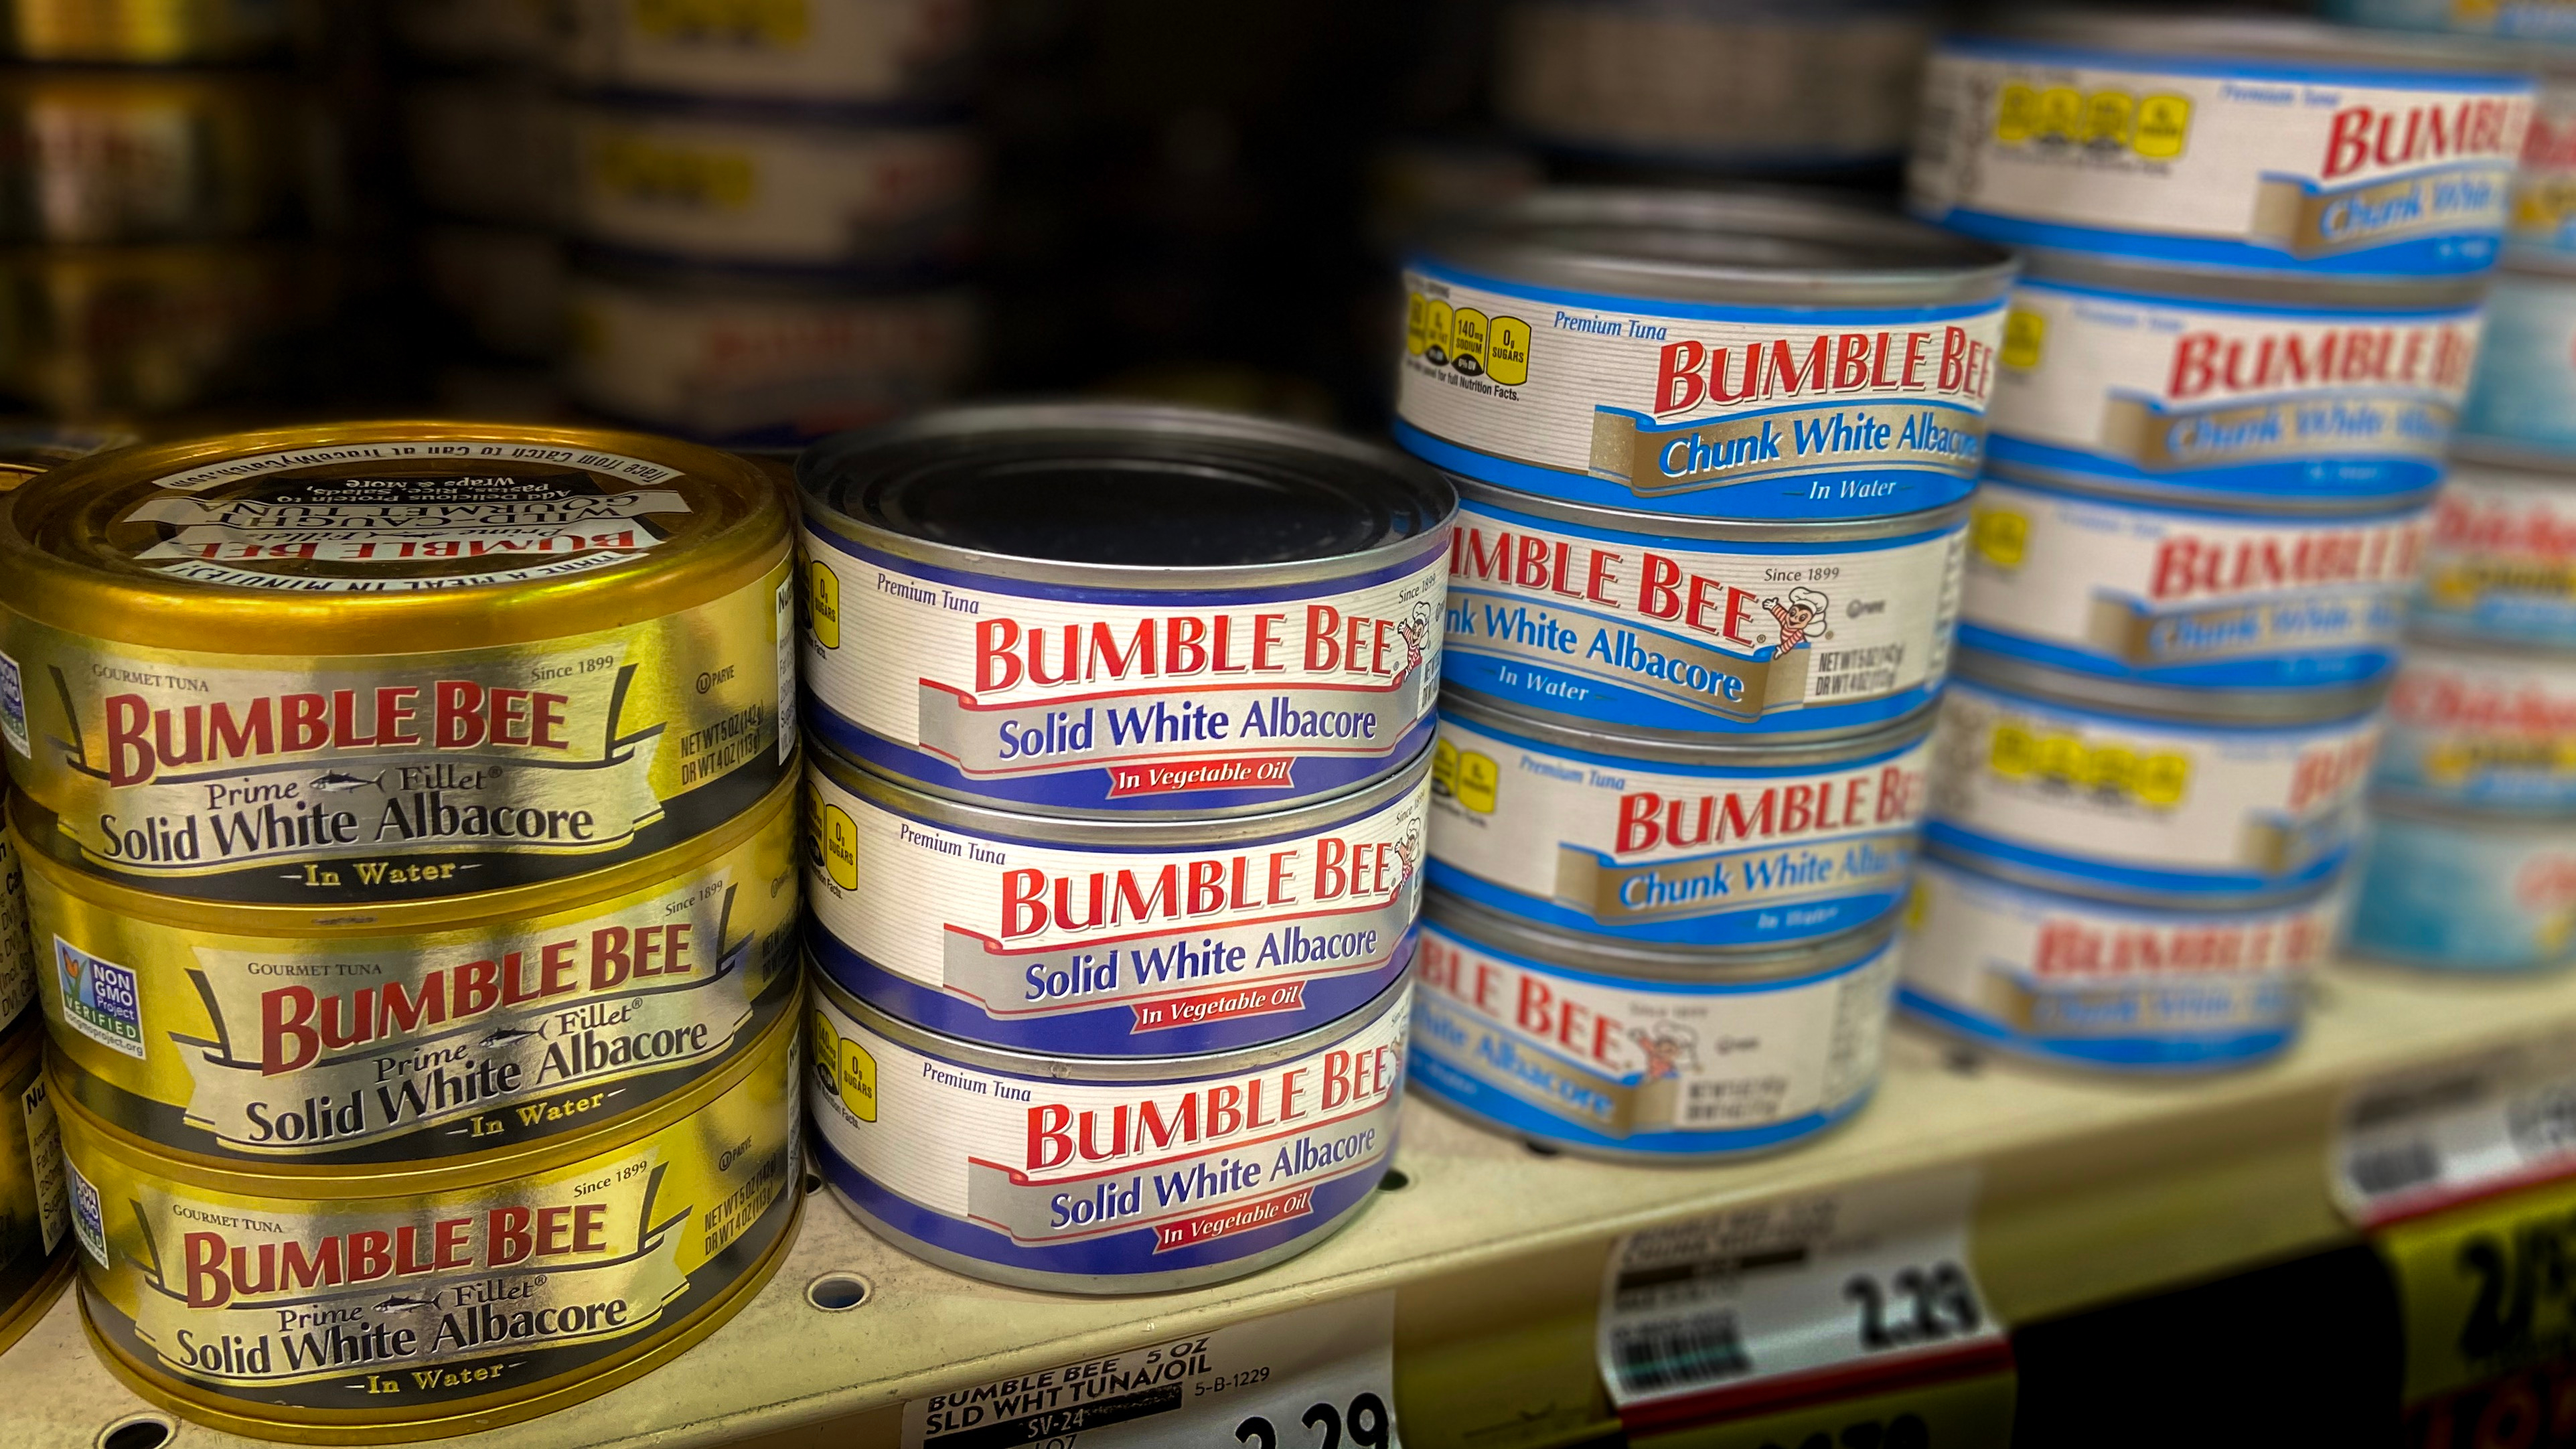 Stacks of Bumble Bee canned tuna on a grocery store shelf.